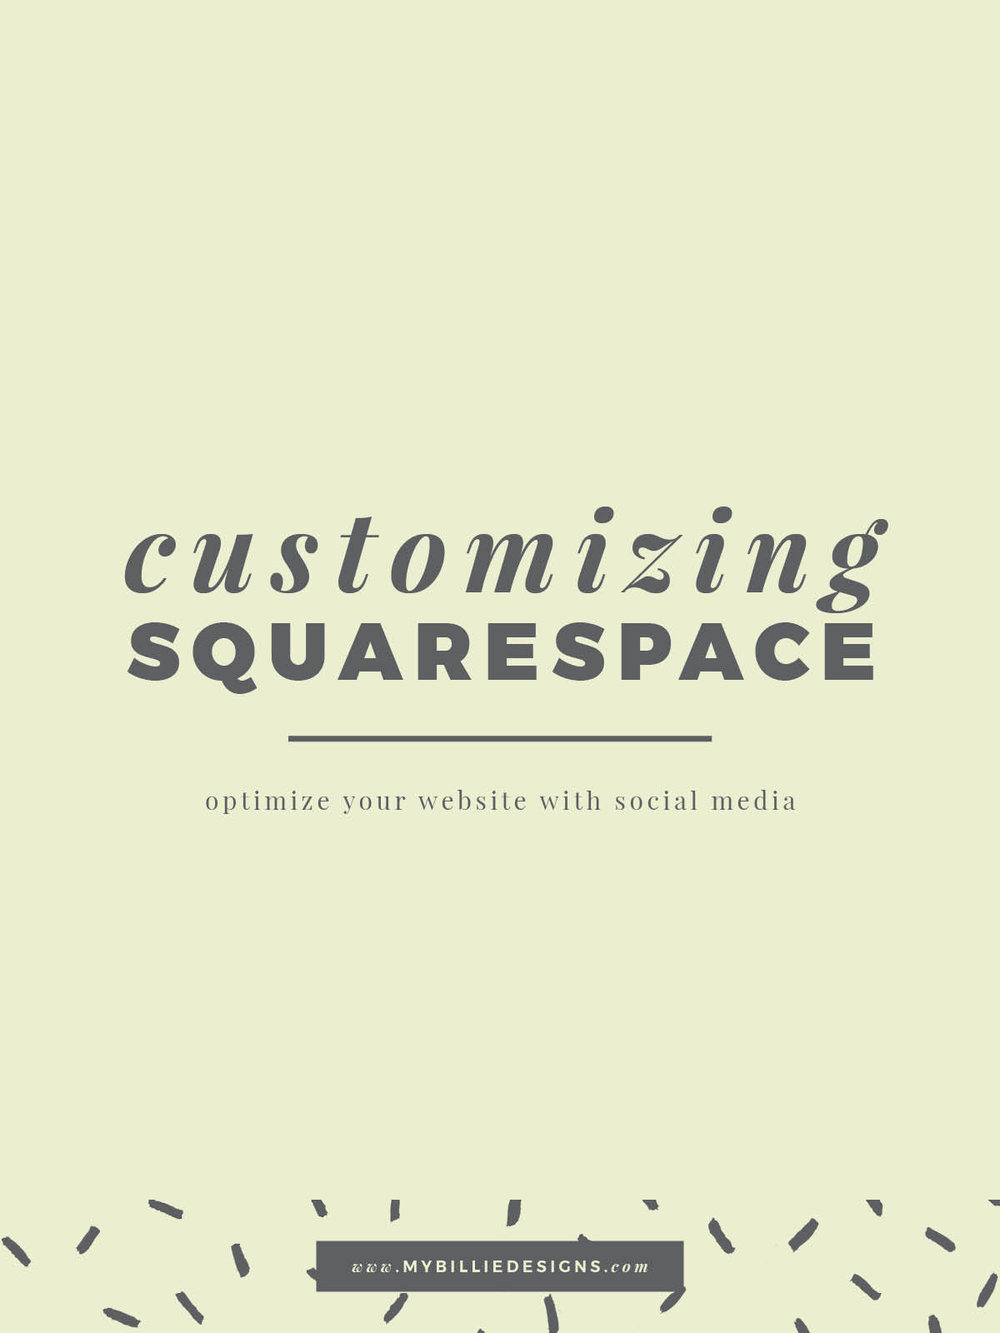 Customizing Squarespace! Optimize your website for social media. Click through to read →